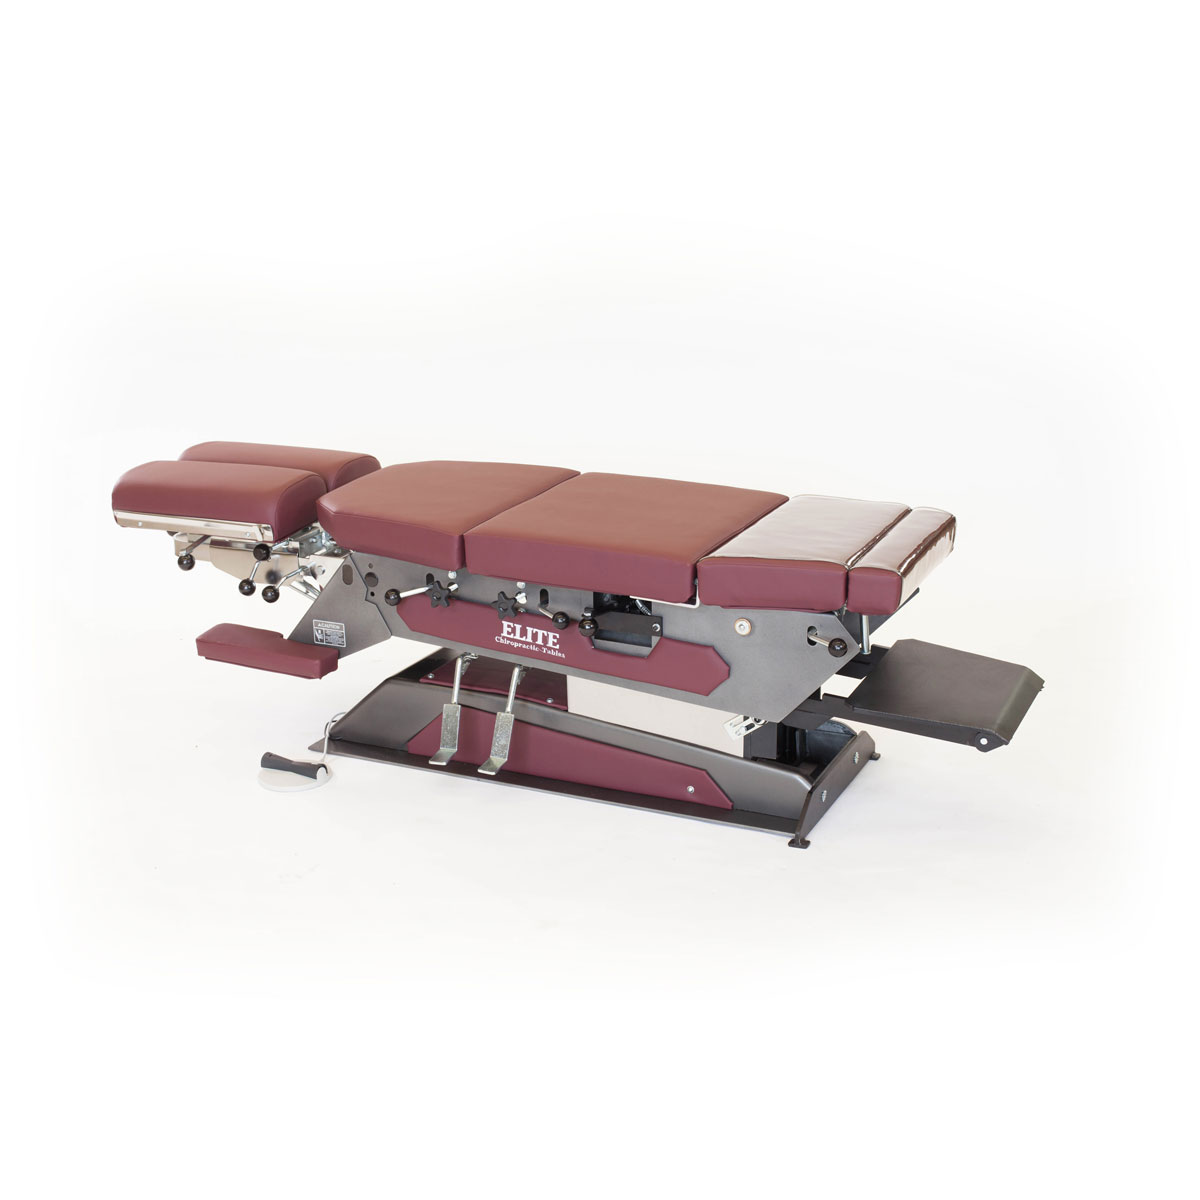 High Low Amp Elevation Table With Cervical Pelvic Thoracic